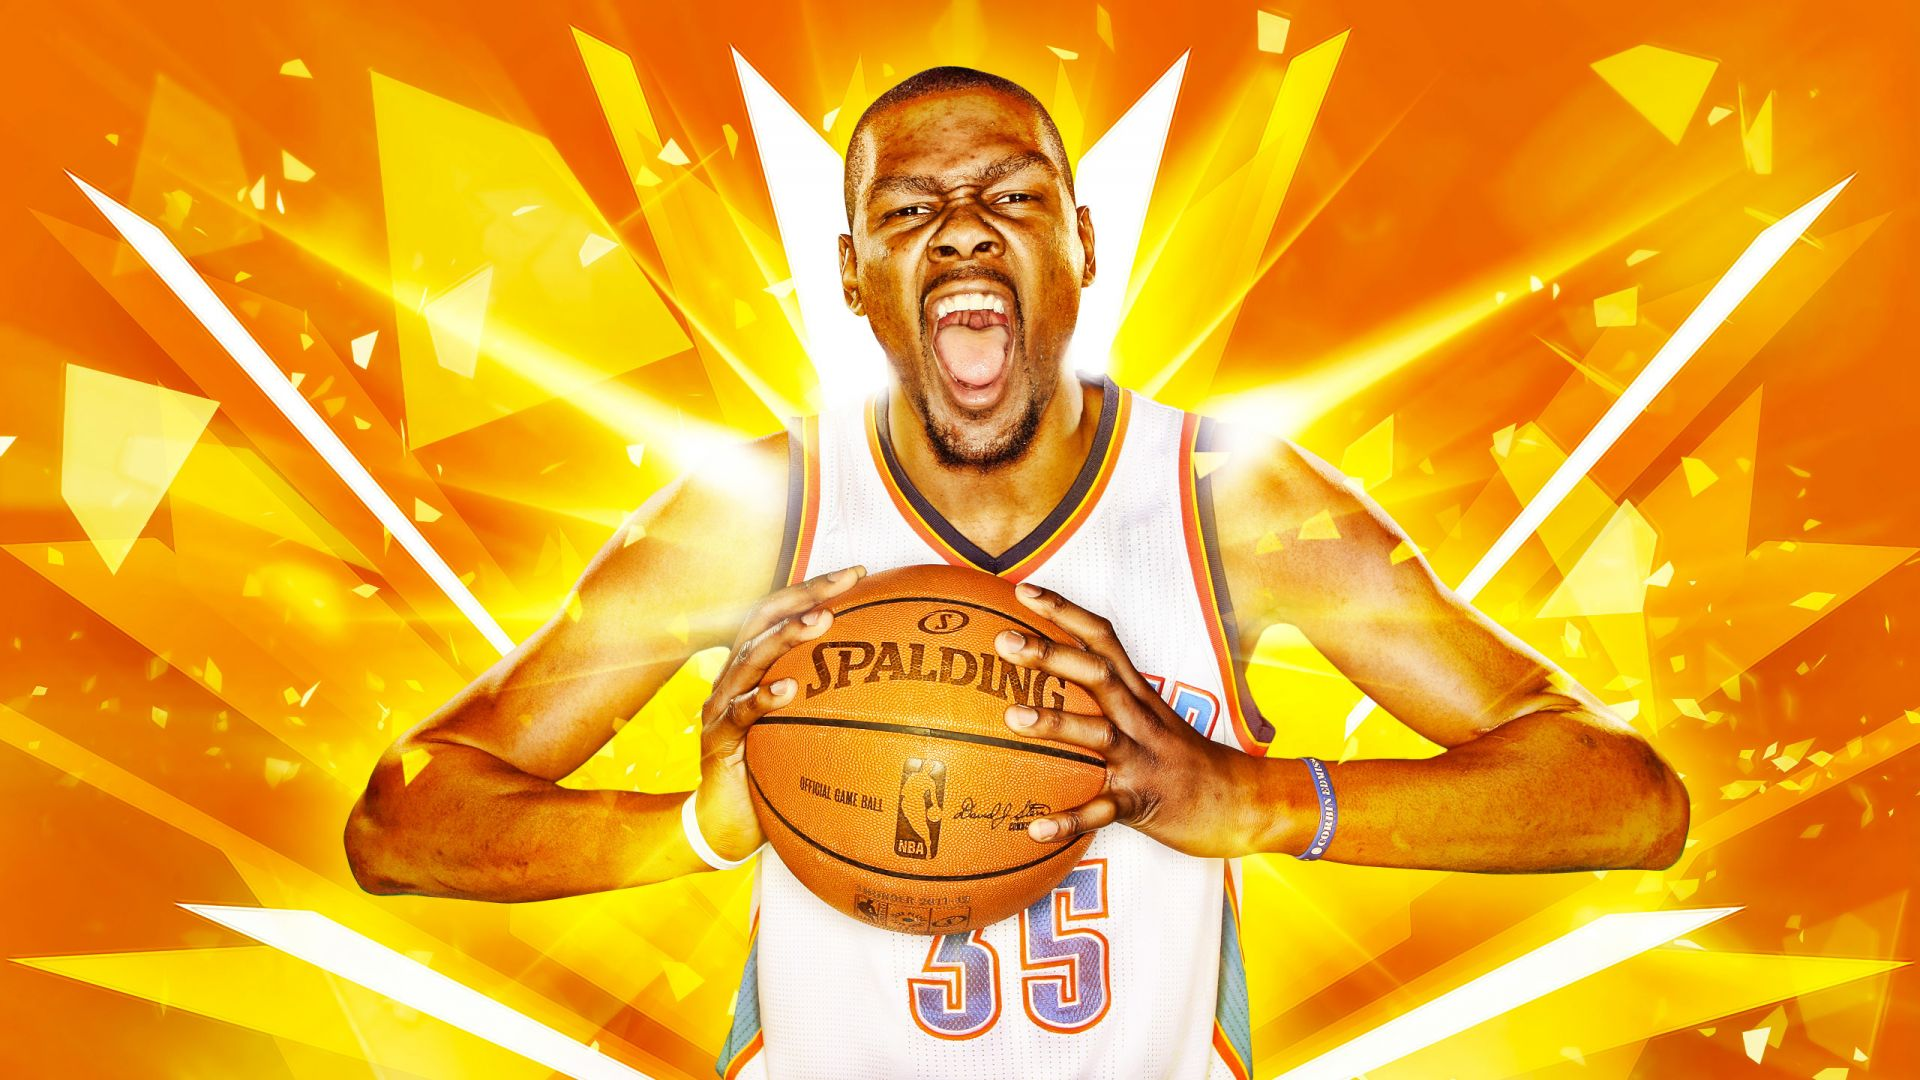 Kevin Durant, Golden State Warriors, Basketball, NBA (horizontal)